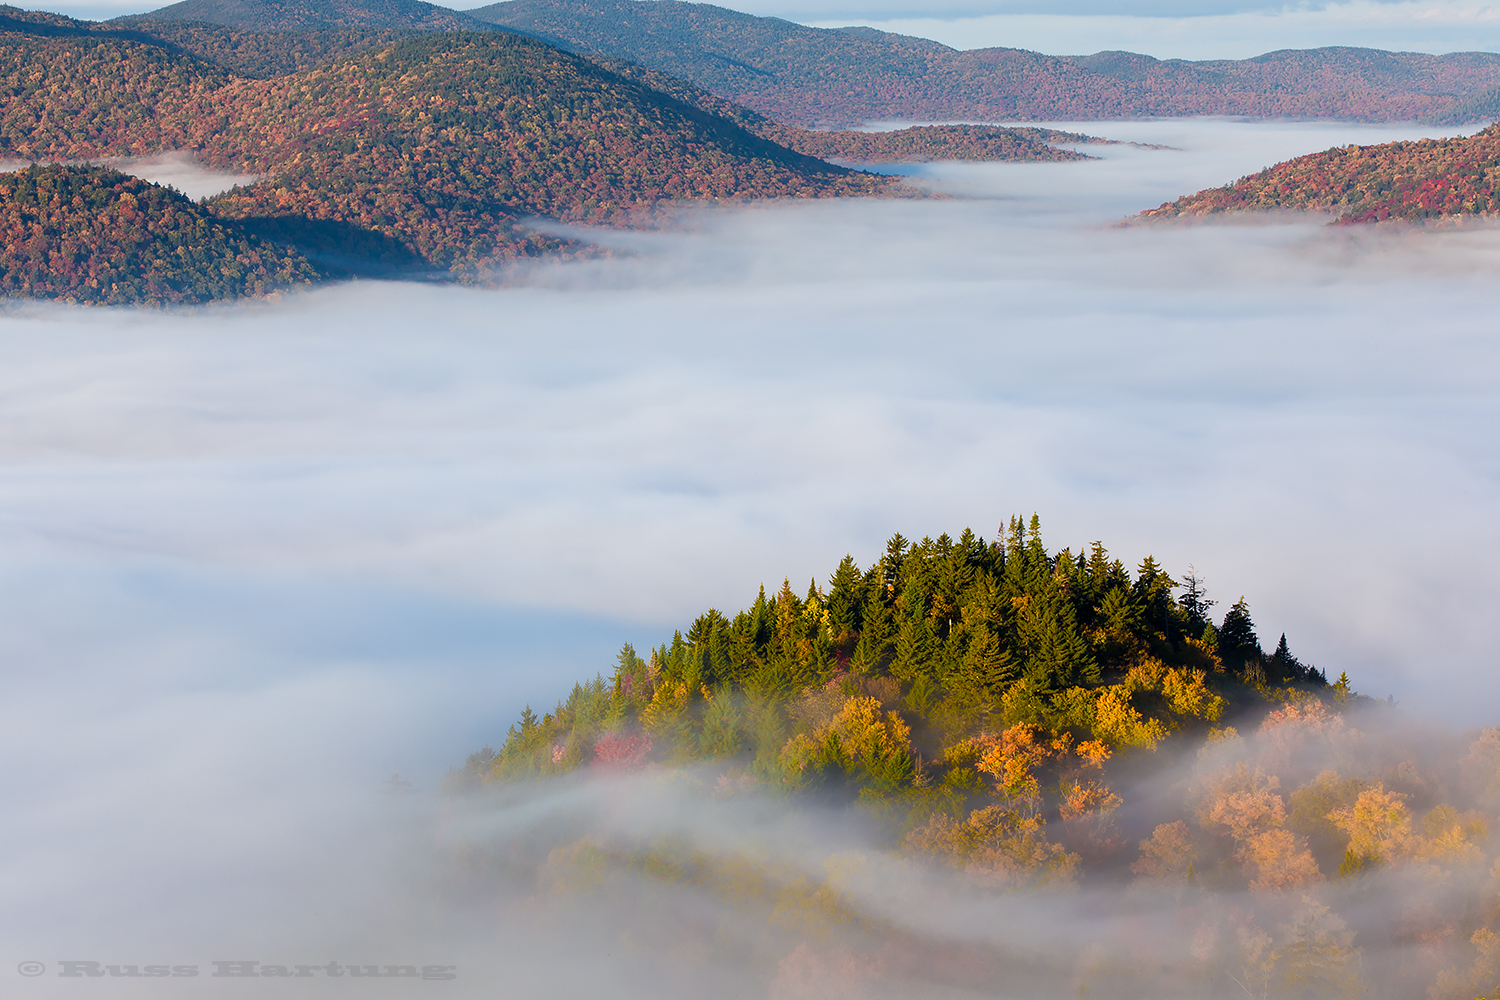 View from the Goodnow Mountain fire tower at peak foliage season.